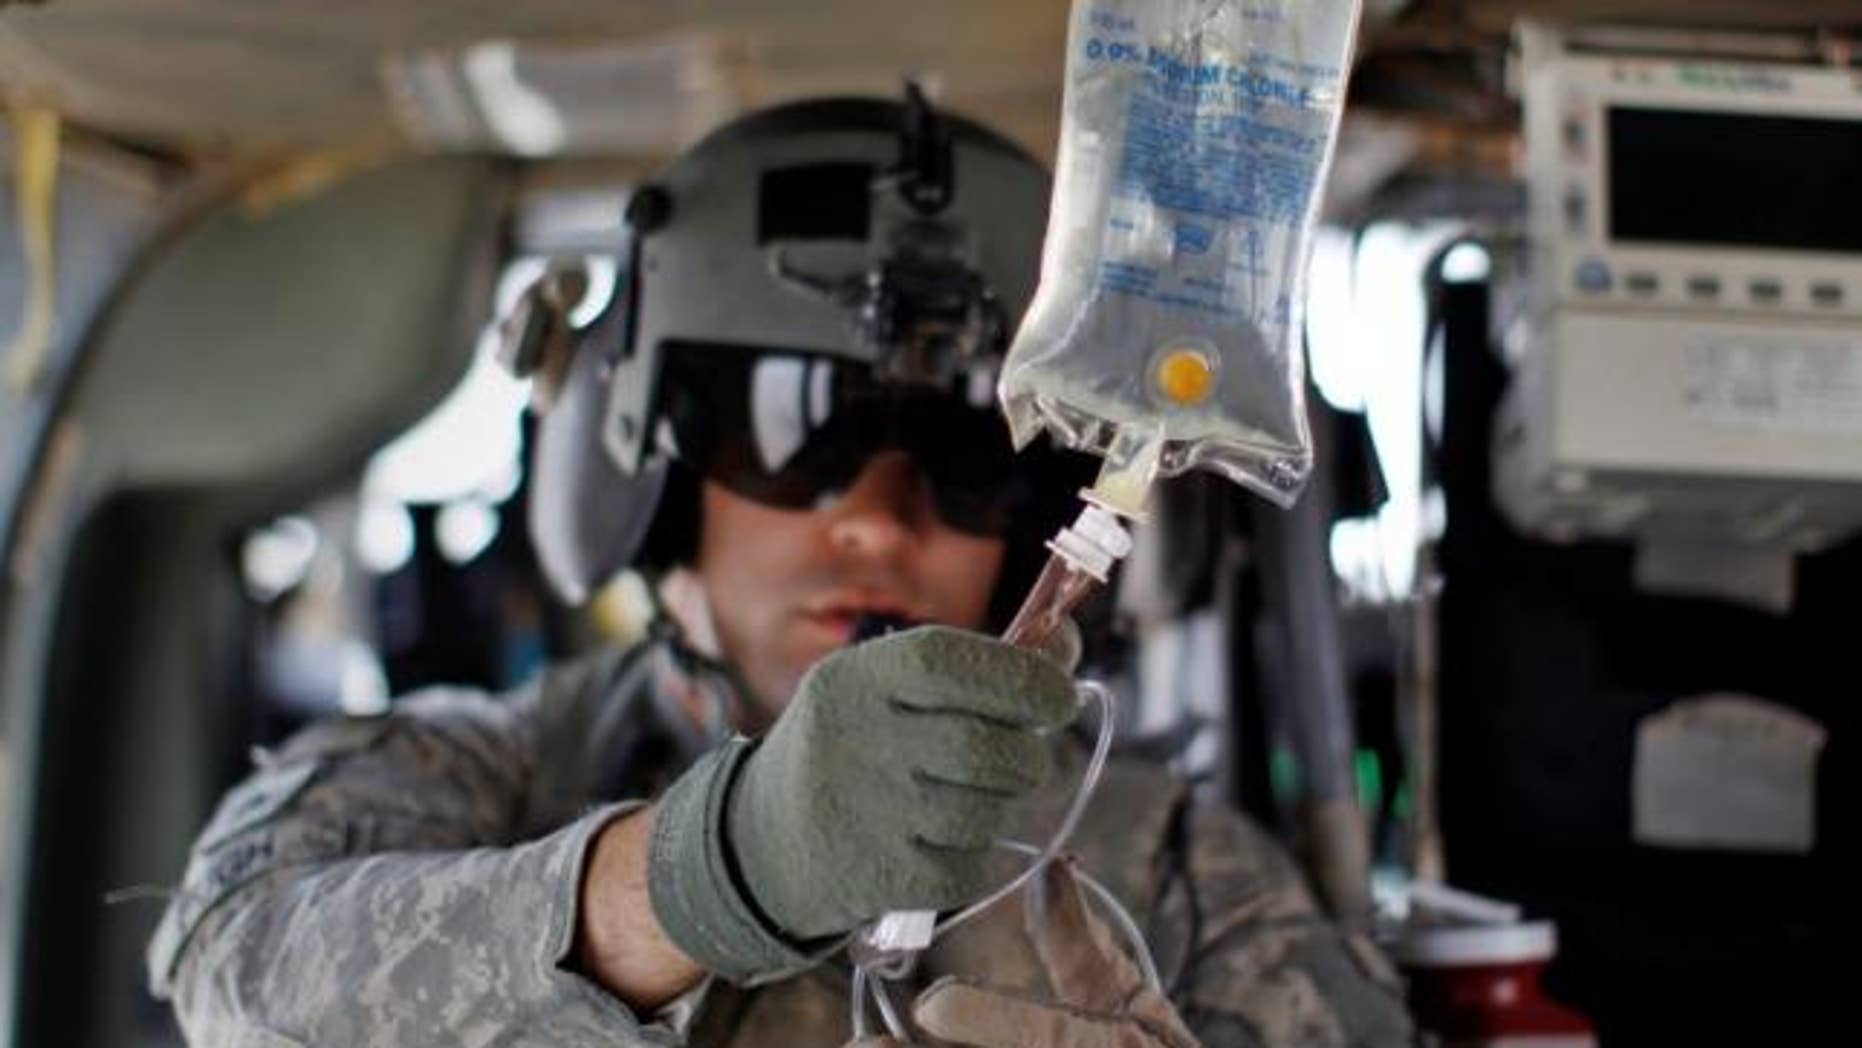 Aug. 17, 2010: Flight medic U.S. Army Sgt Ian Bugh prepares an IV drip as his medevac helicopter team flies to pick up a wounded Marine, near the town of Marjah in Helmand Province.